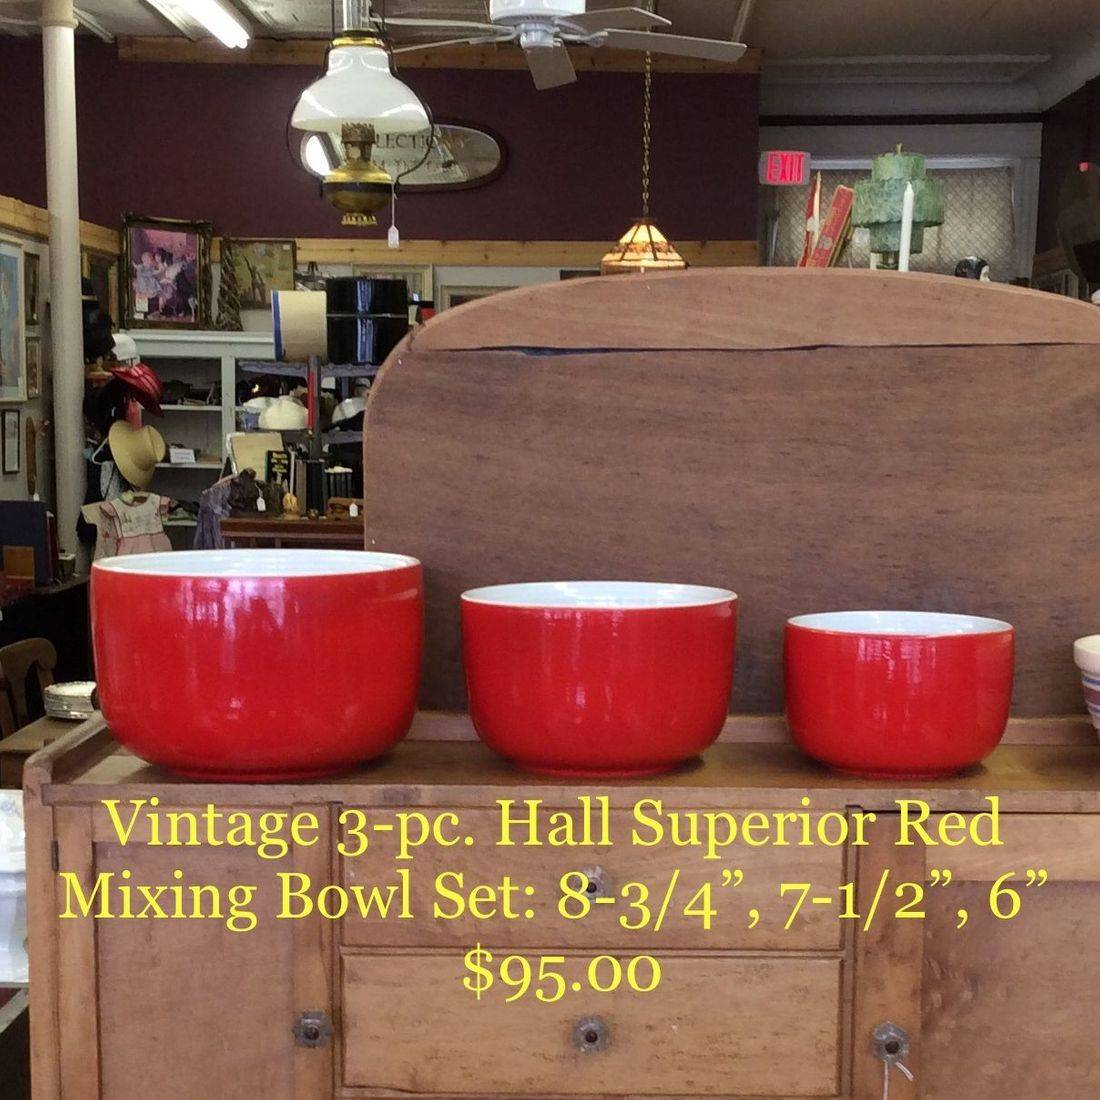 """Vintage 3-Pc. Hall Superior Red Straight-Sided Mixing Bowl Set  8-3/4"""", 7-1/2"""", 6""""   $95.00"""